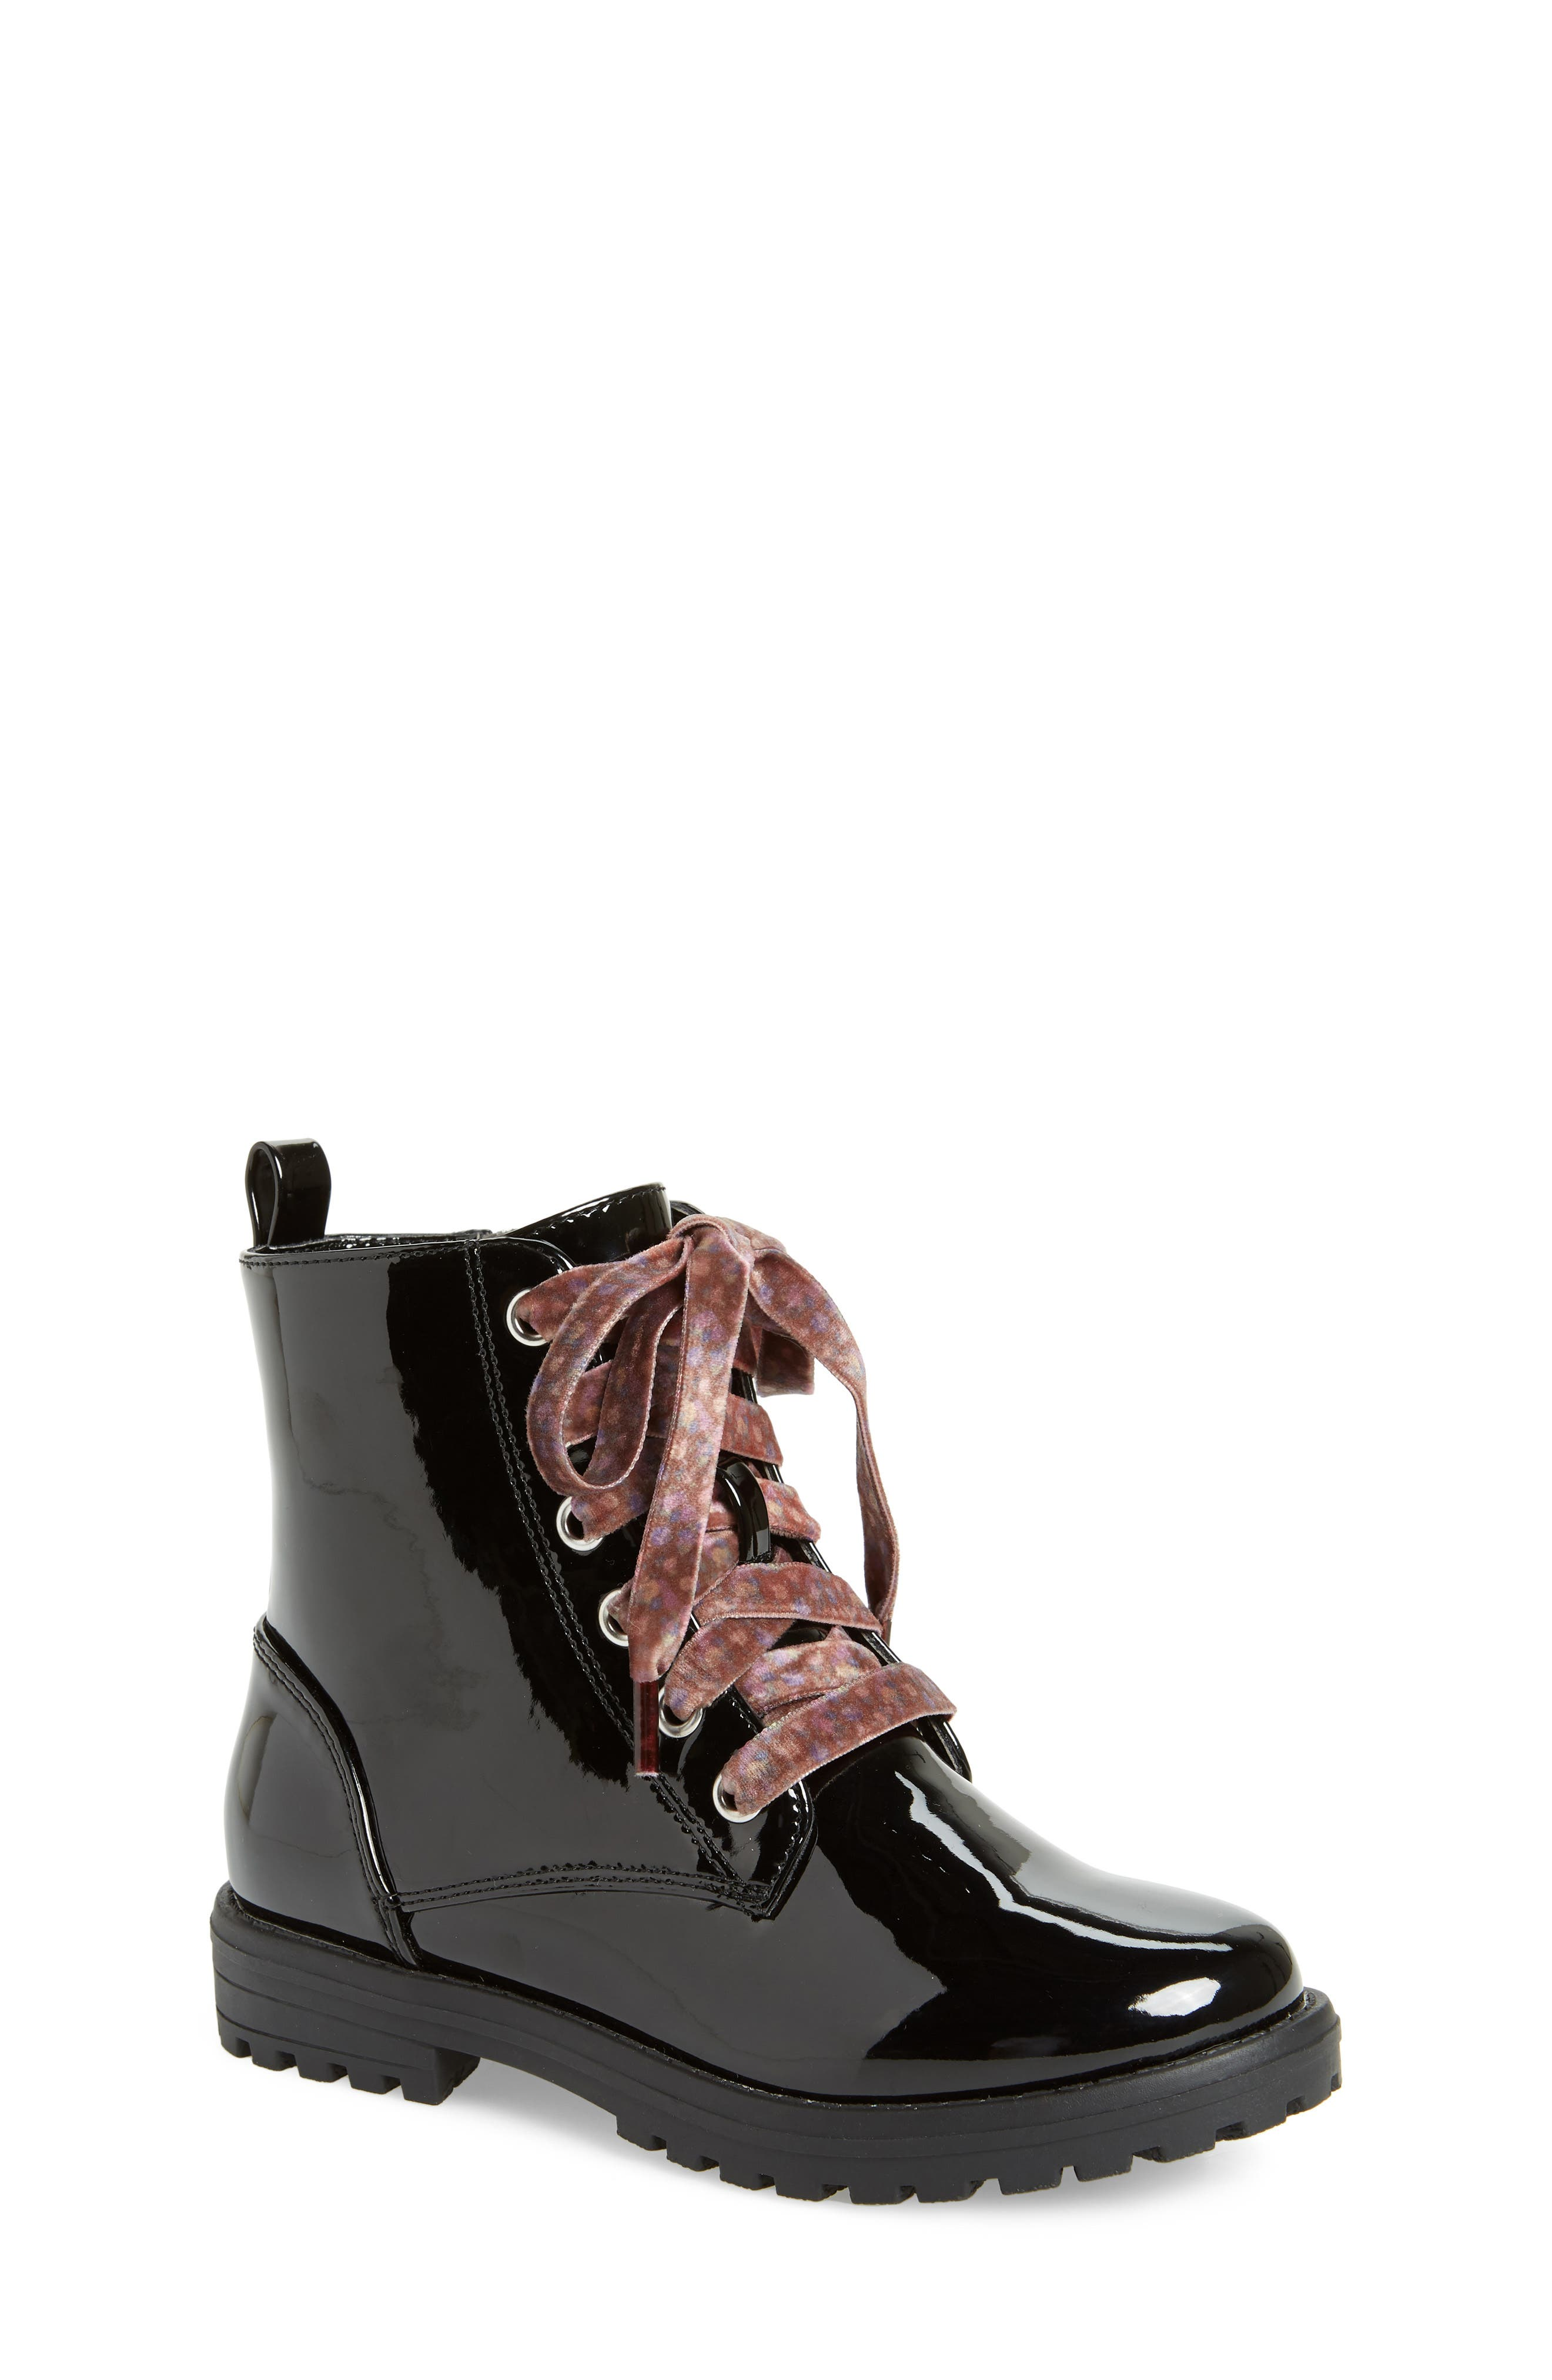 Bristol Hiking Boot,                         Main,                         color, BLACK PATENT FAUX LEATHER